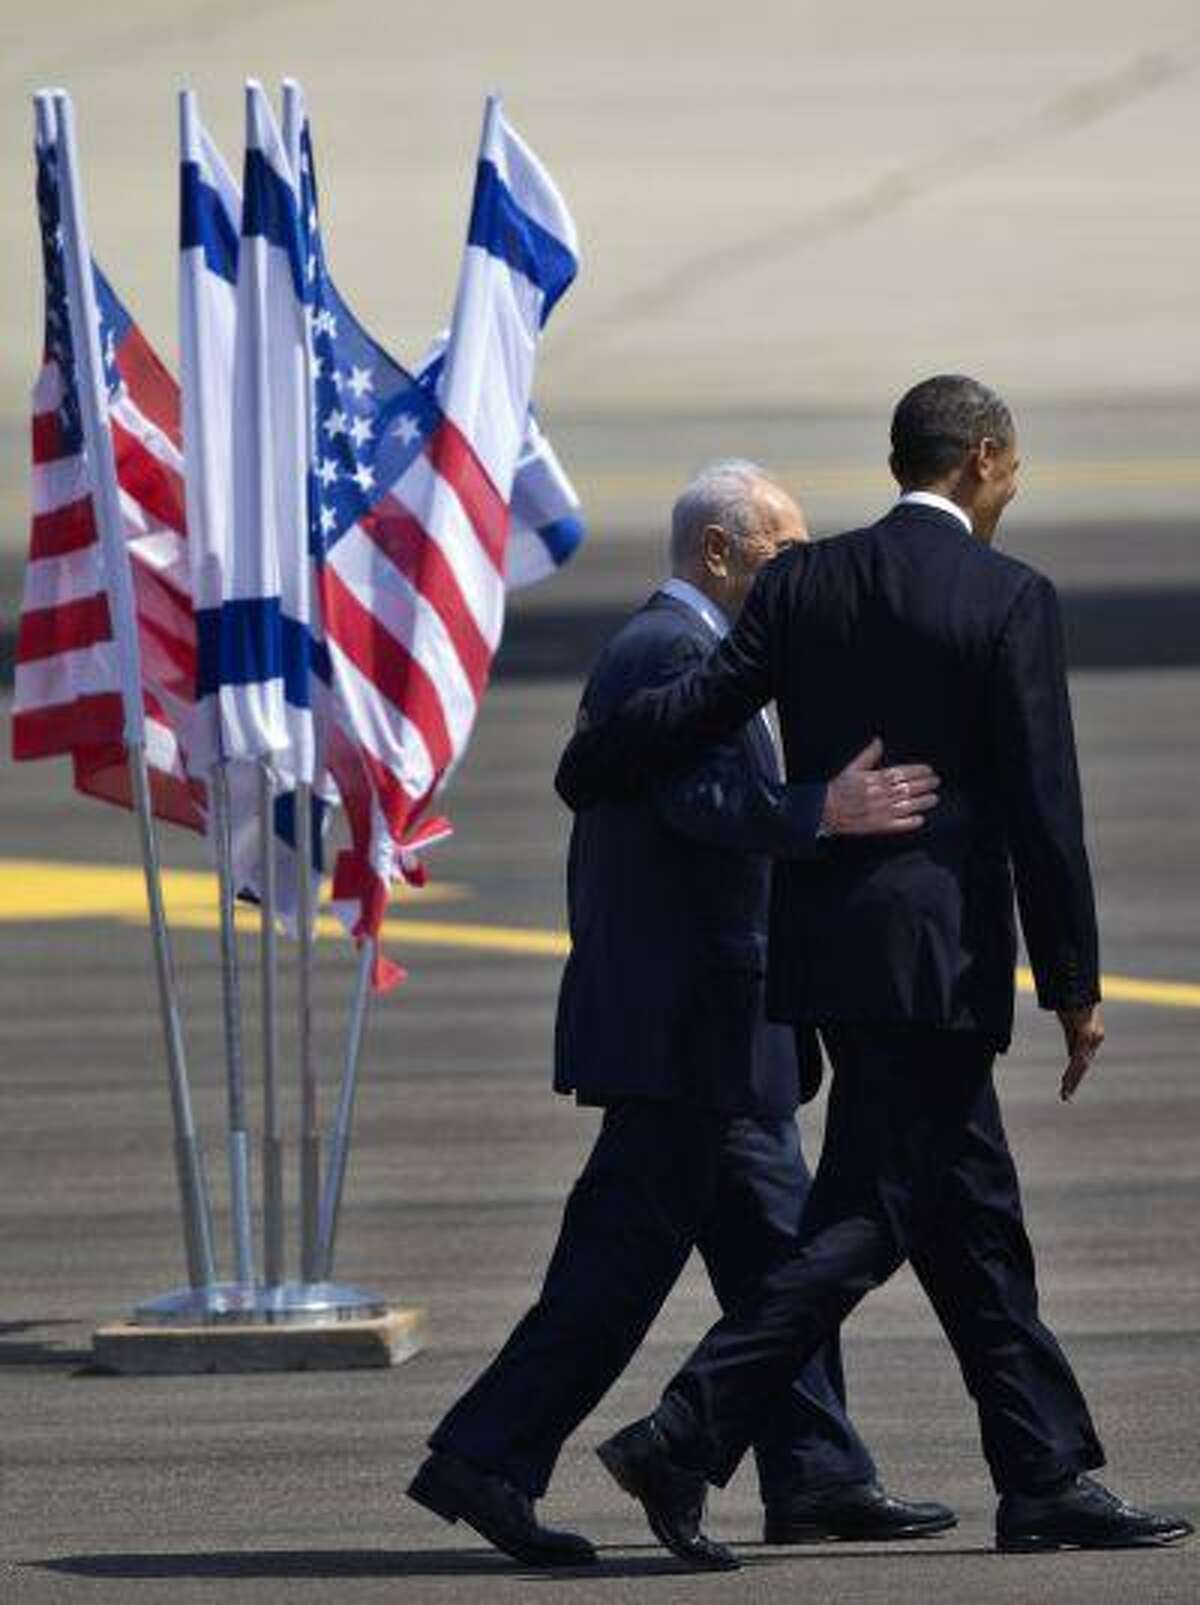 US President Barack Obama, right, and Israel's President Shimon Peres walk together at the end of welcoming ceremony upon Obama's arrival at Ben Gurion airport near Tel Aviv, Israel, Wednesday, March 20, 2013. President Barack Obama is declaring common cause with Israel, highlighting the bonds between the United States and its Mideast ally. He says he has made Israel the first stop of the first trip of his second term to restate his commitment to Israel's security. (AP Photo/Ariel Schalit)